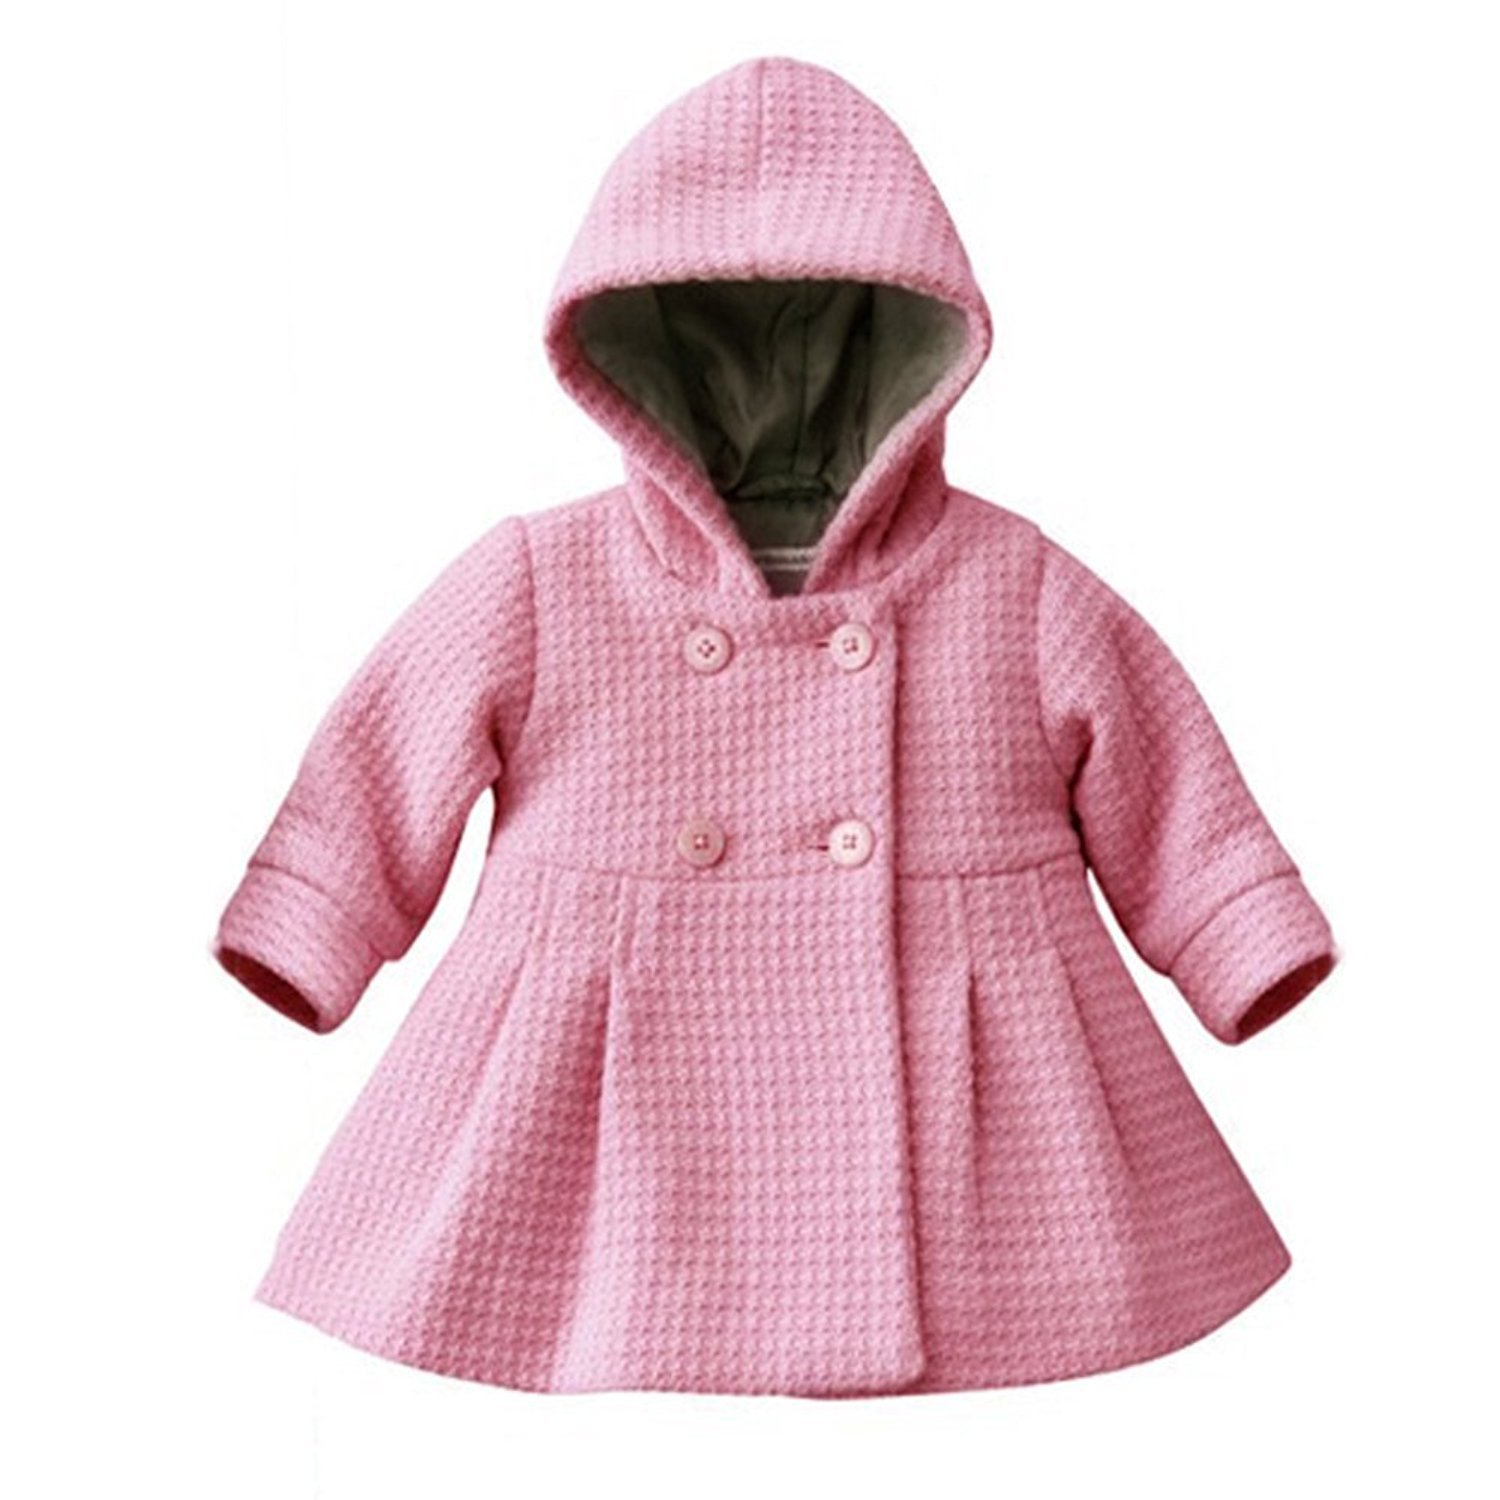 Baby Girl's Fall Winter Hooded Jacket Trench Coat Outerwear (18-24Months, Pink)